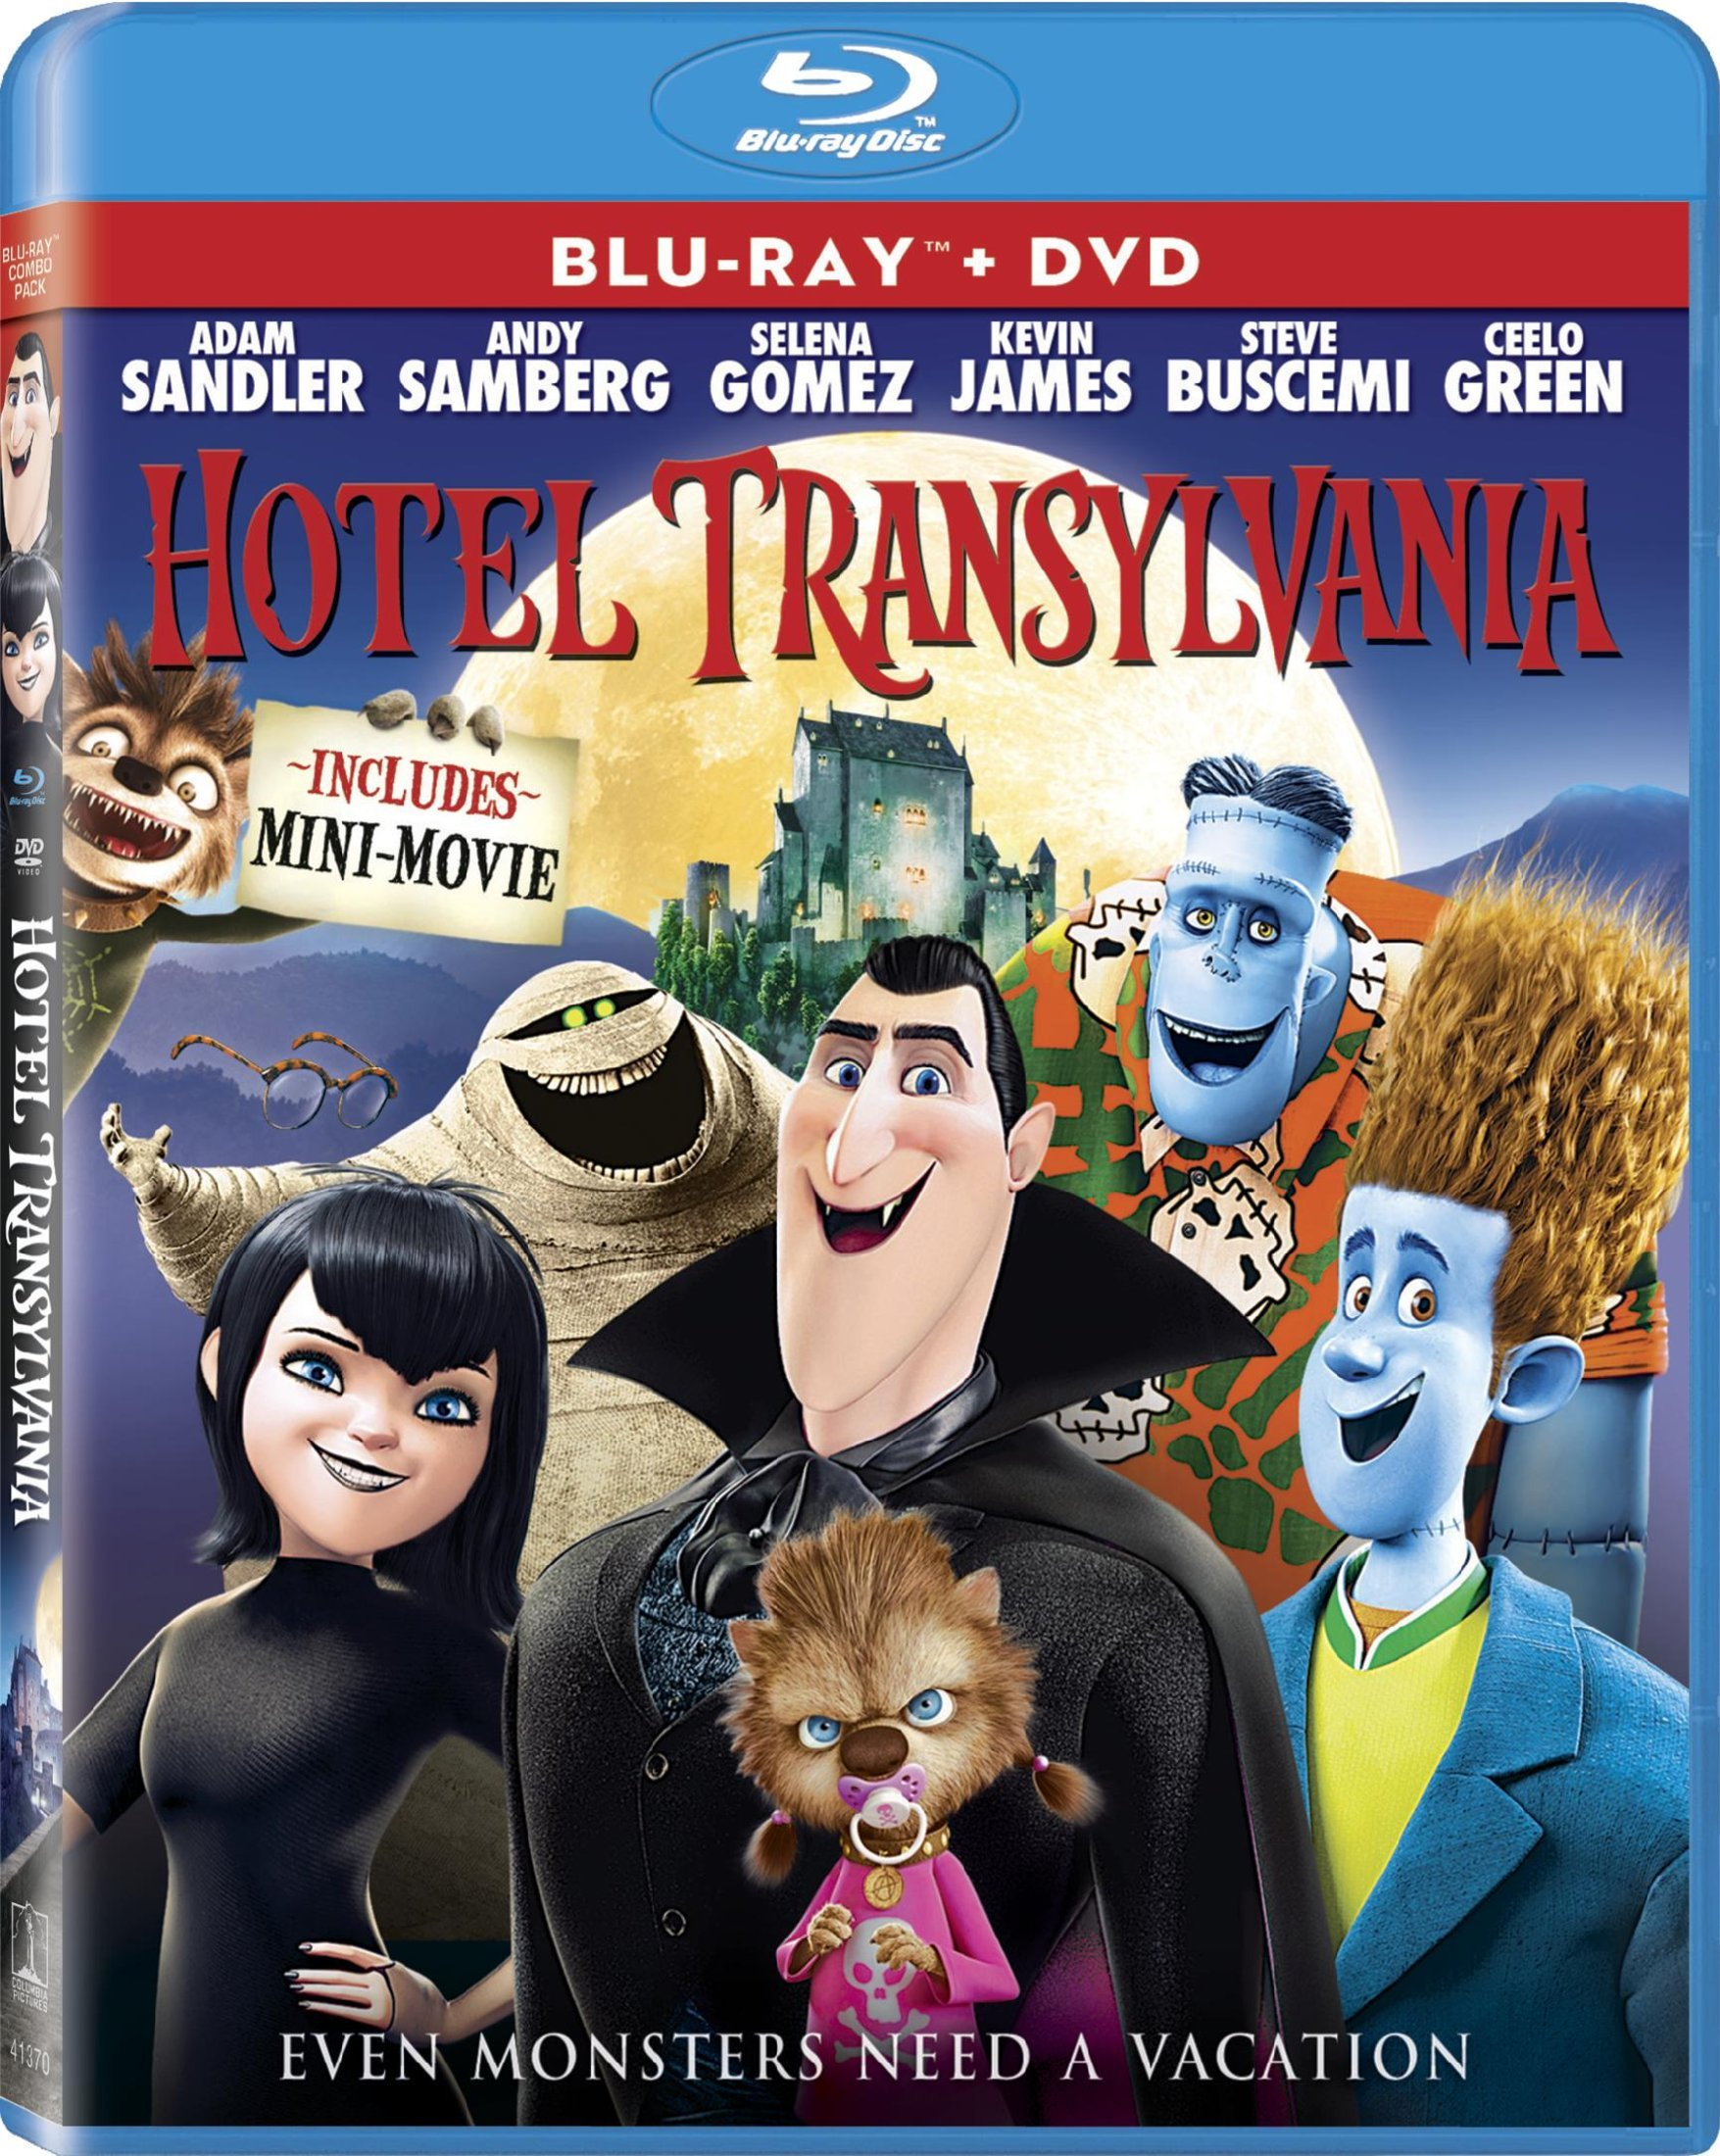 Giveaway: Win a 'Hotel Transylvania' Blu-ray Prize Pack